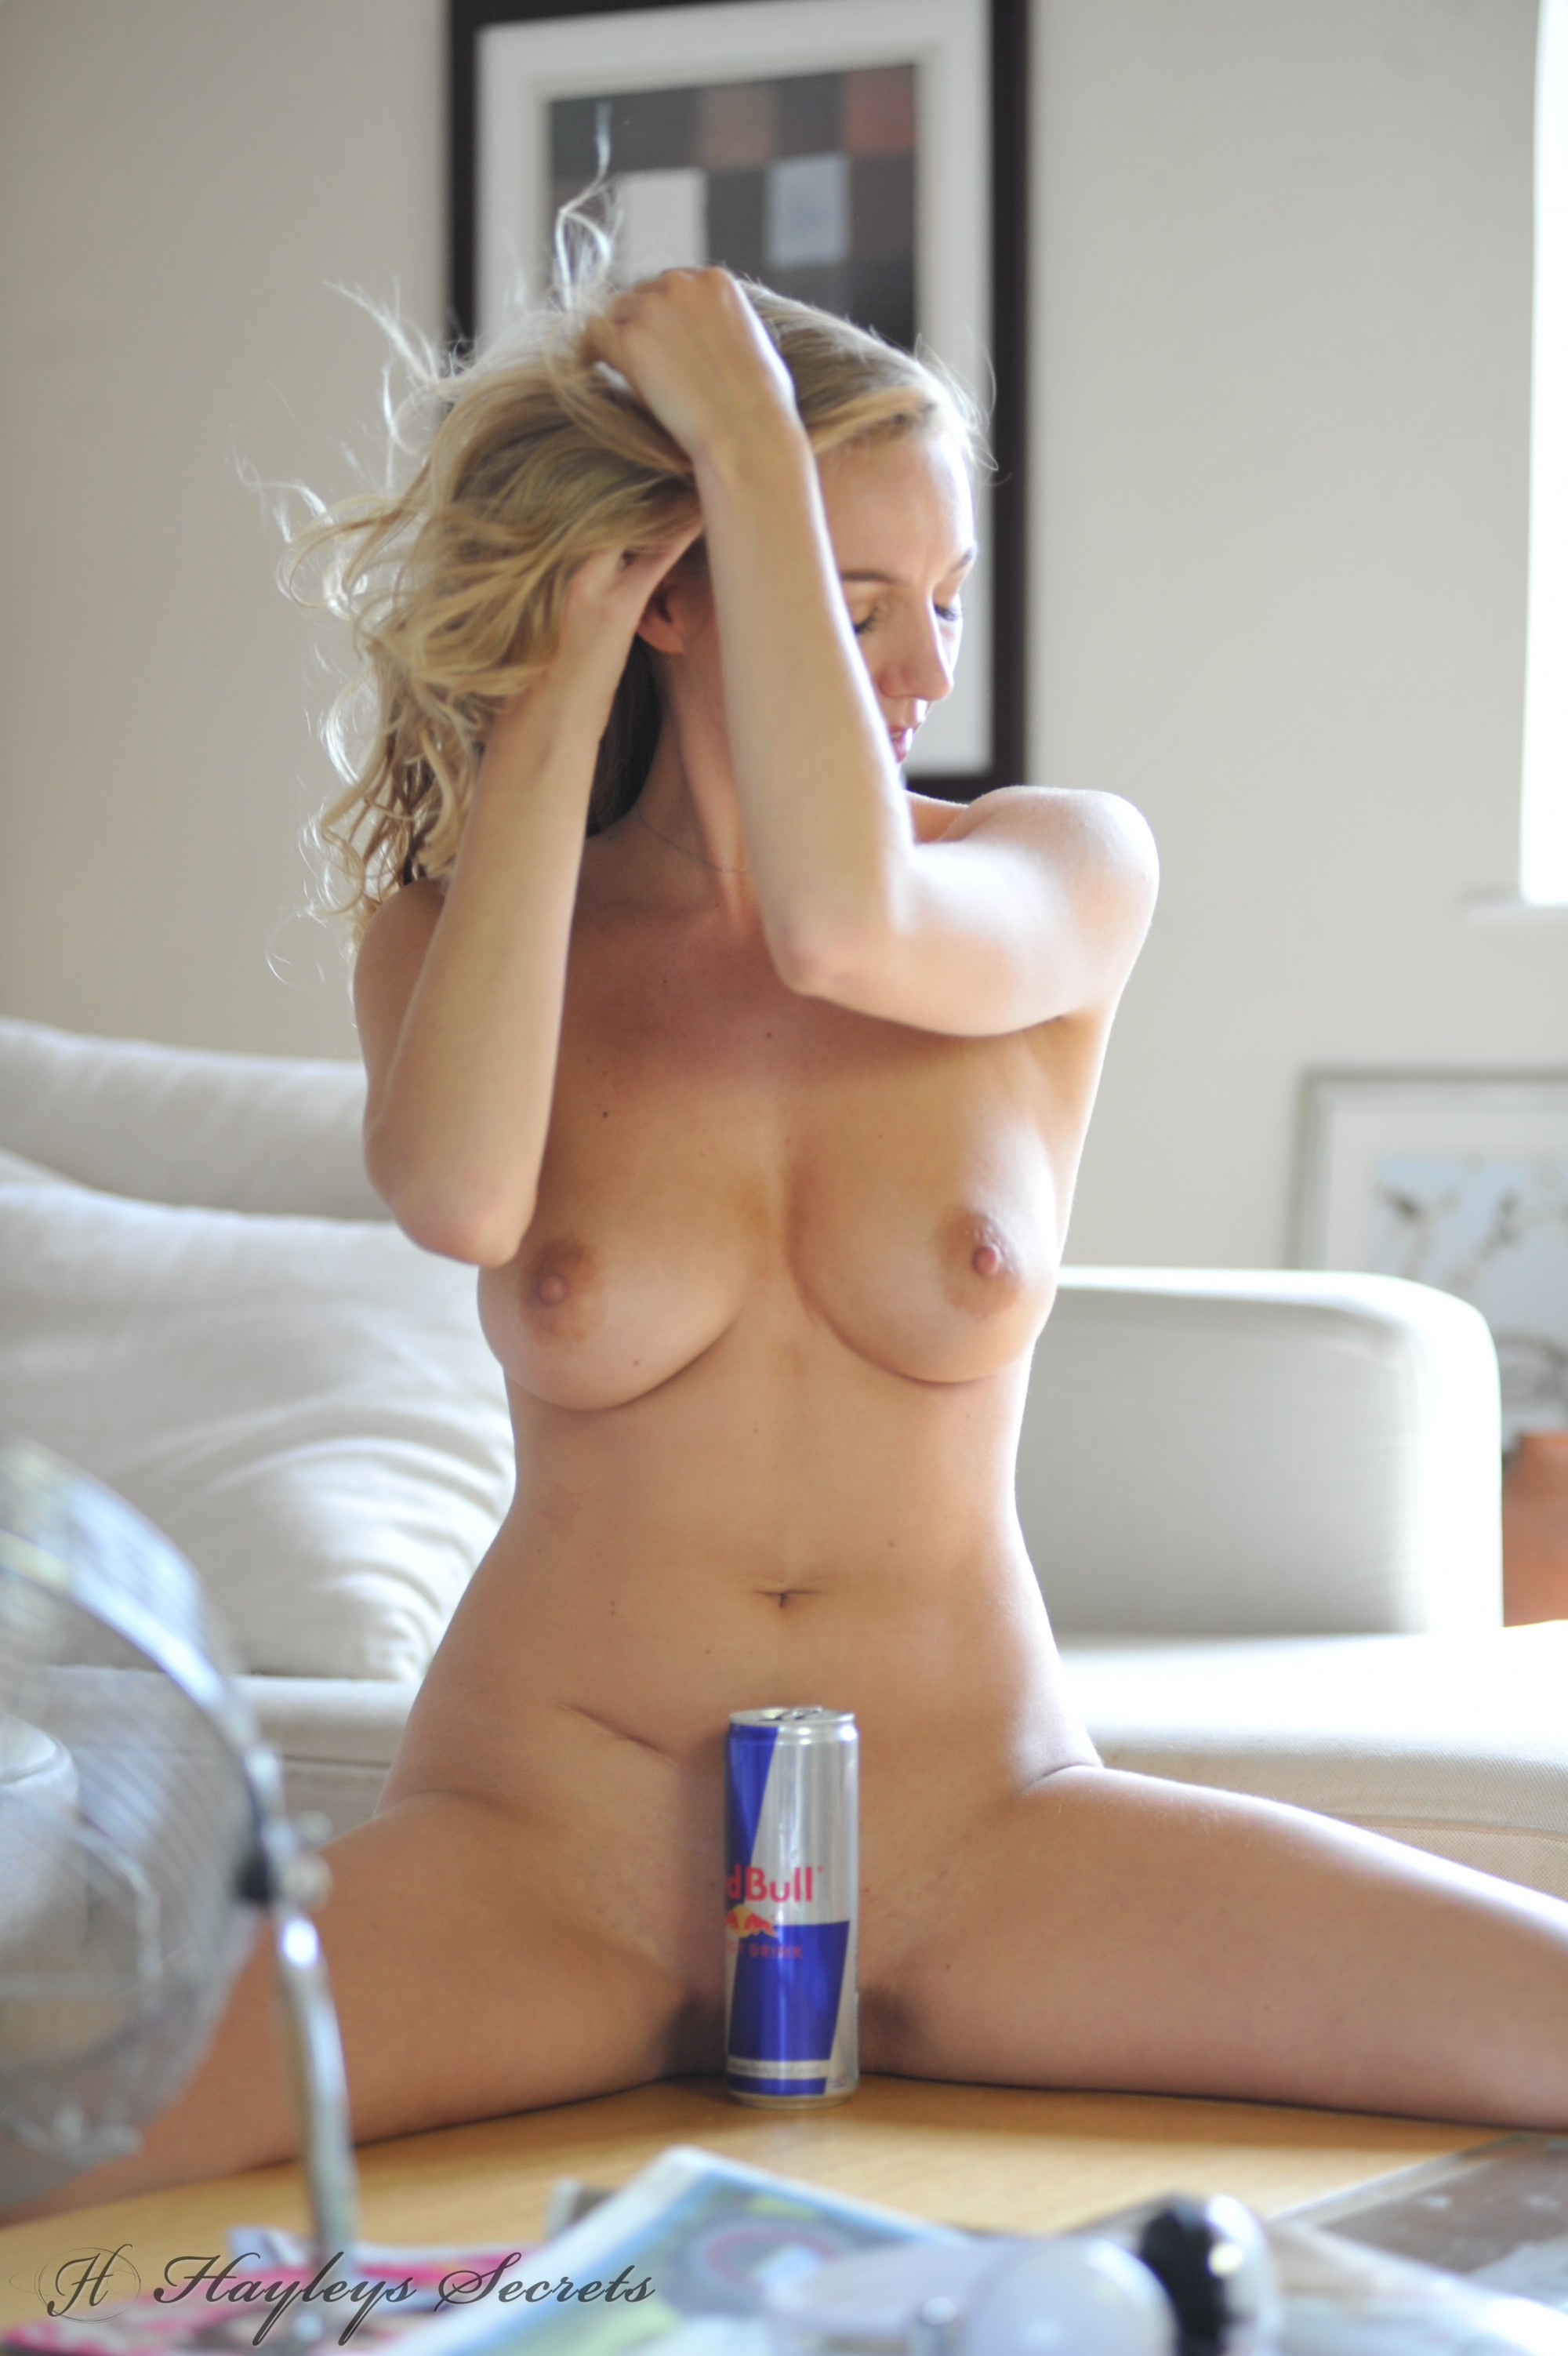 Hayley Marie Strips For A Red Bull - Sexy Gallery Full -4038